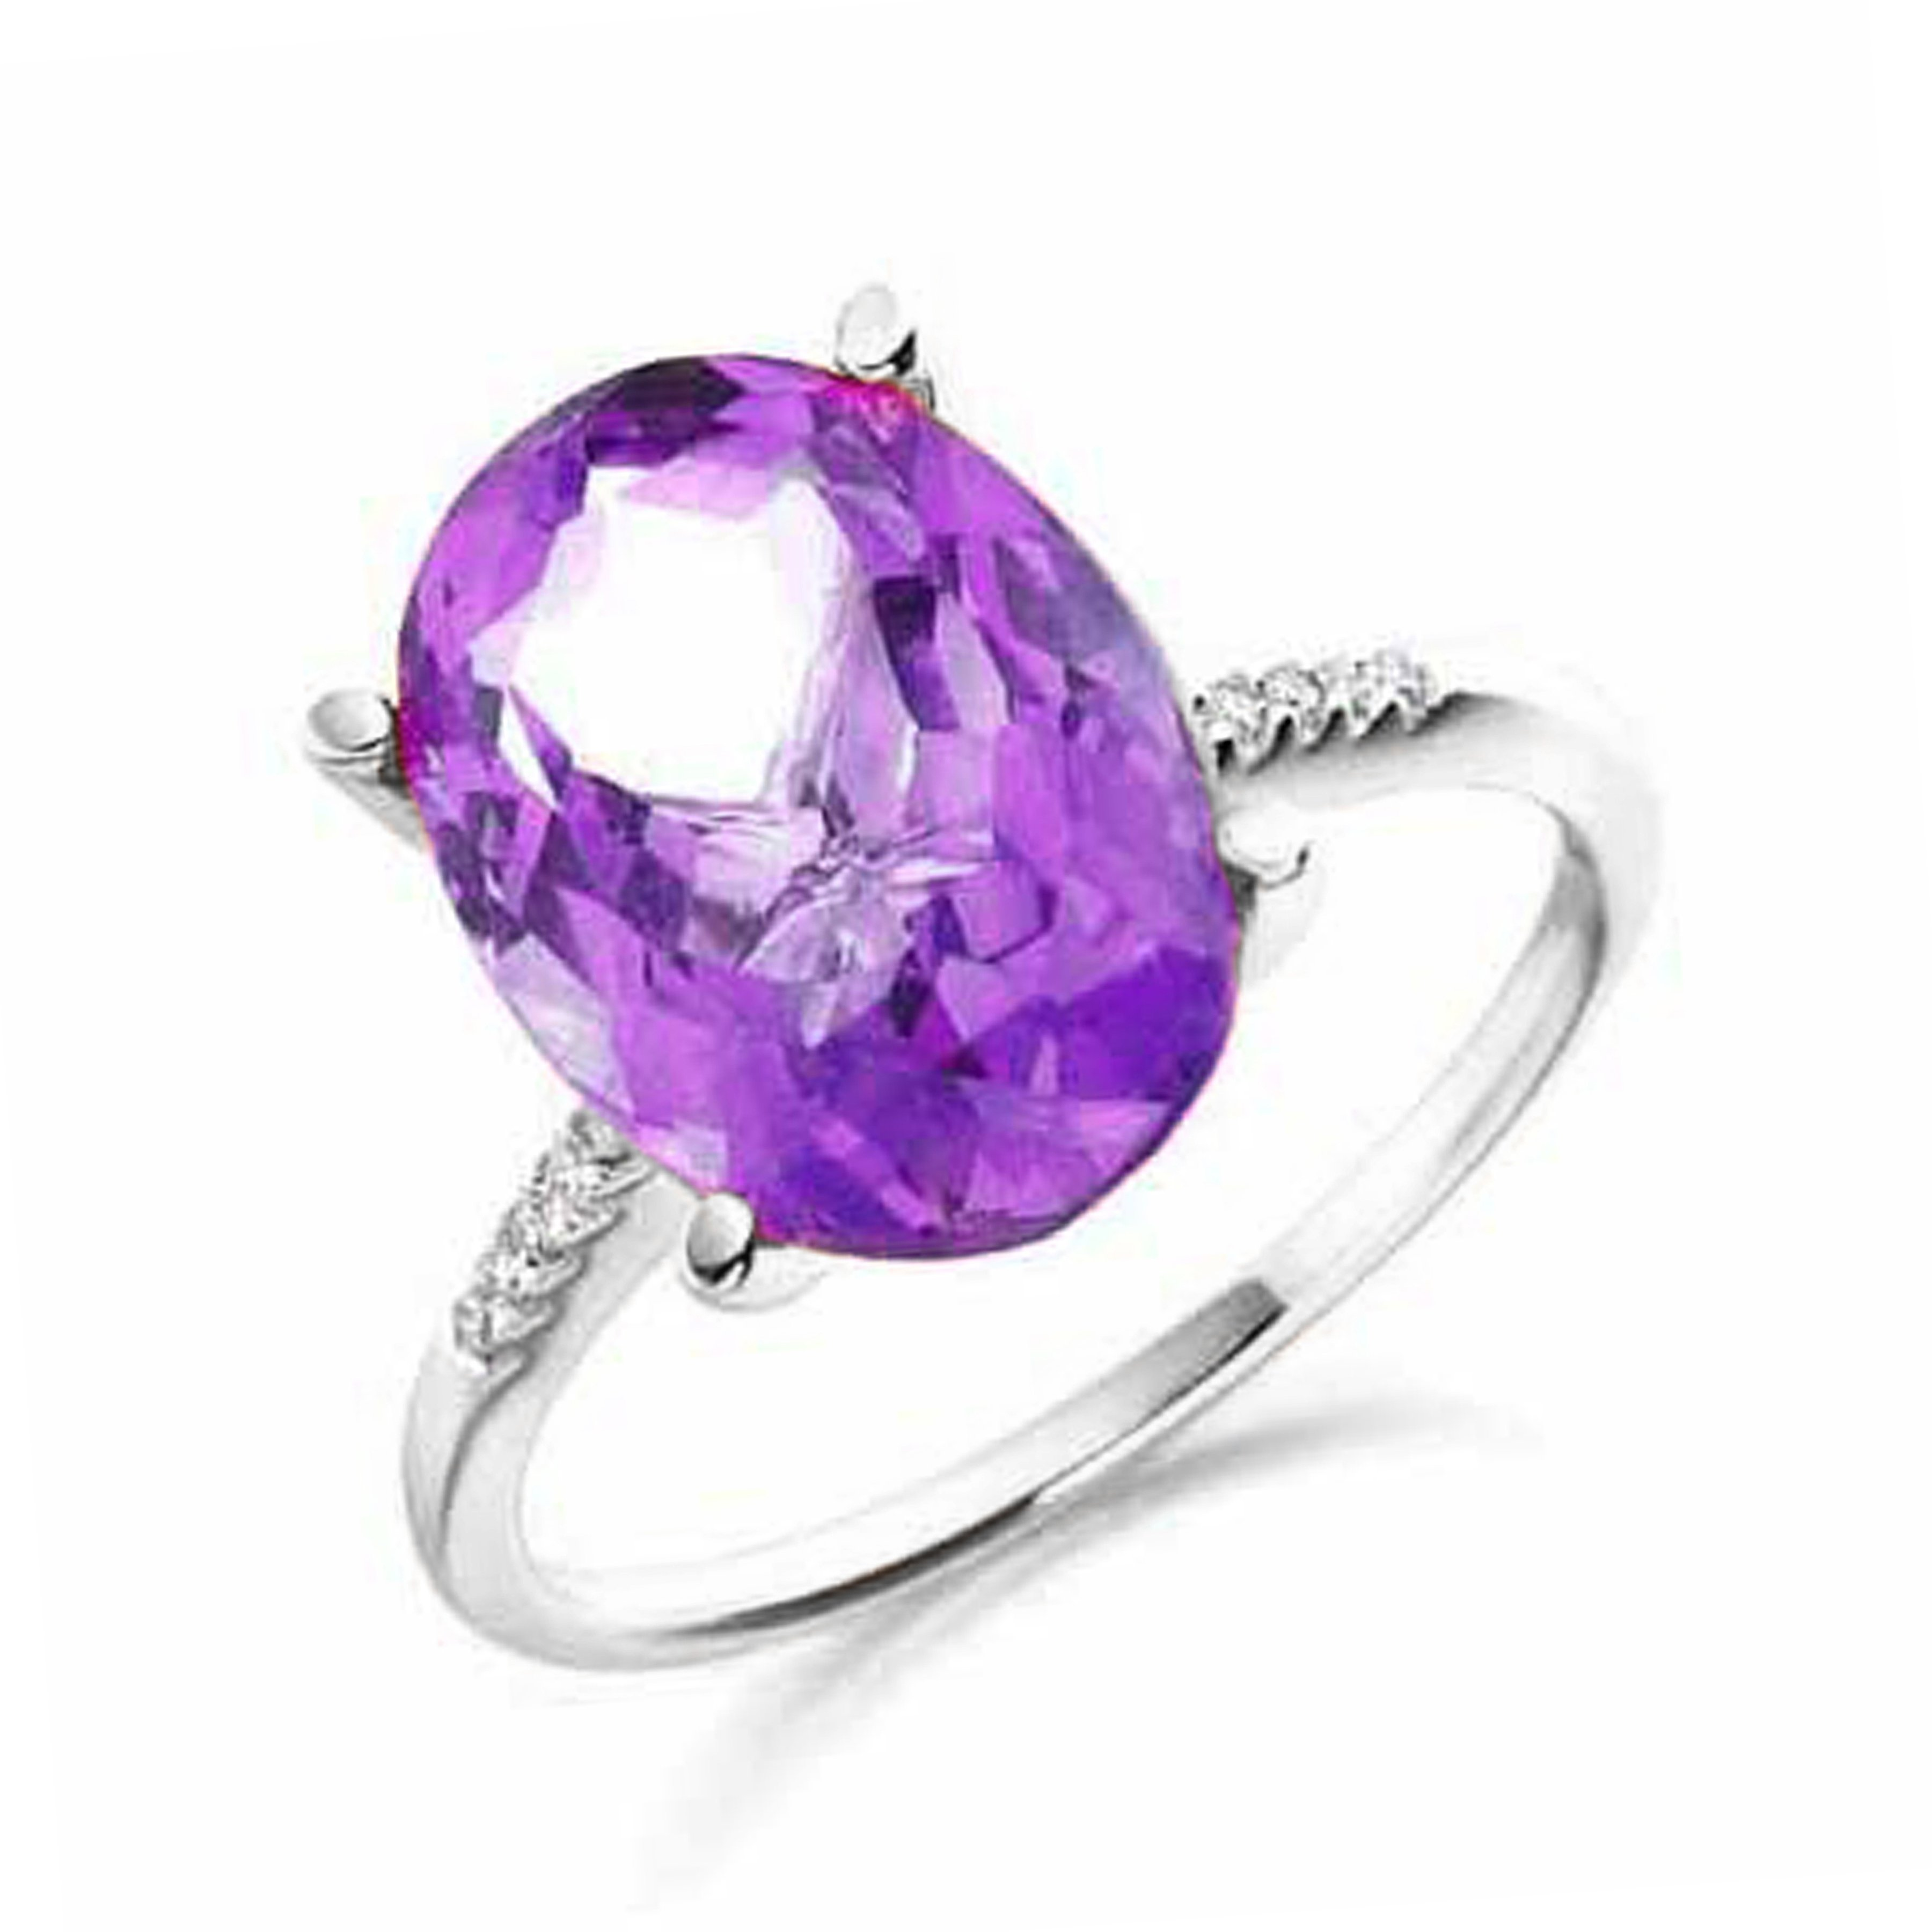 Round Cut Diamond Cluster Earrings / Birthday Gift (0.25Ct - 5.8mm)